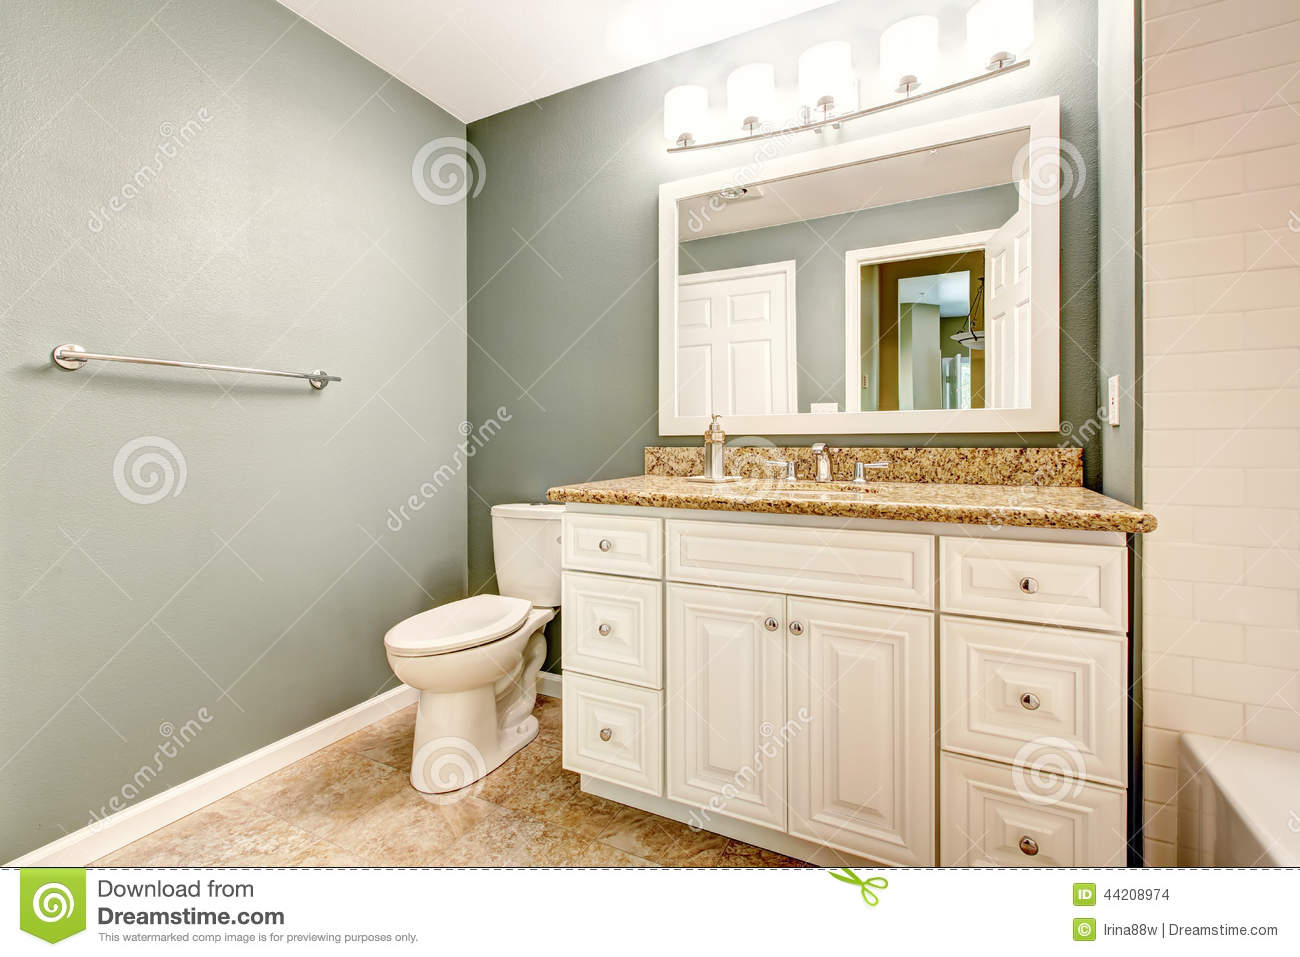 white bathroom vanity cabinet with granite top stock photo - image